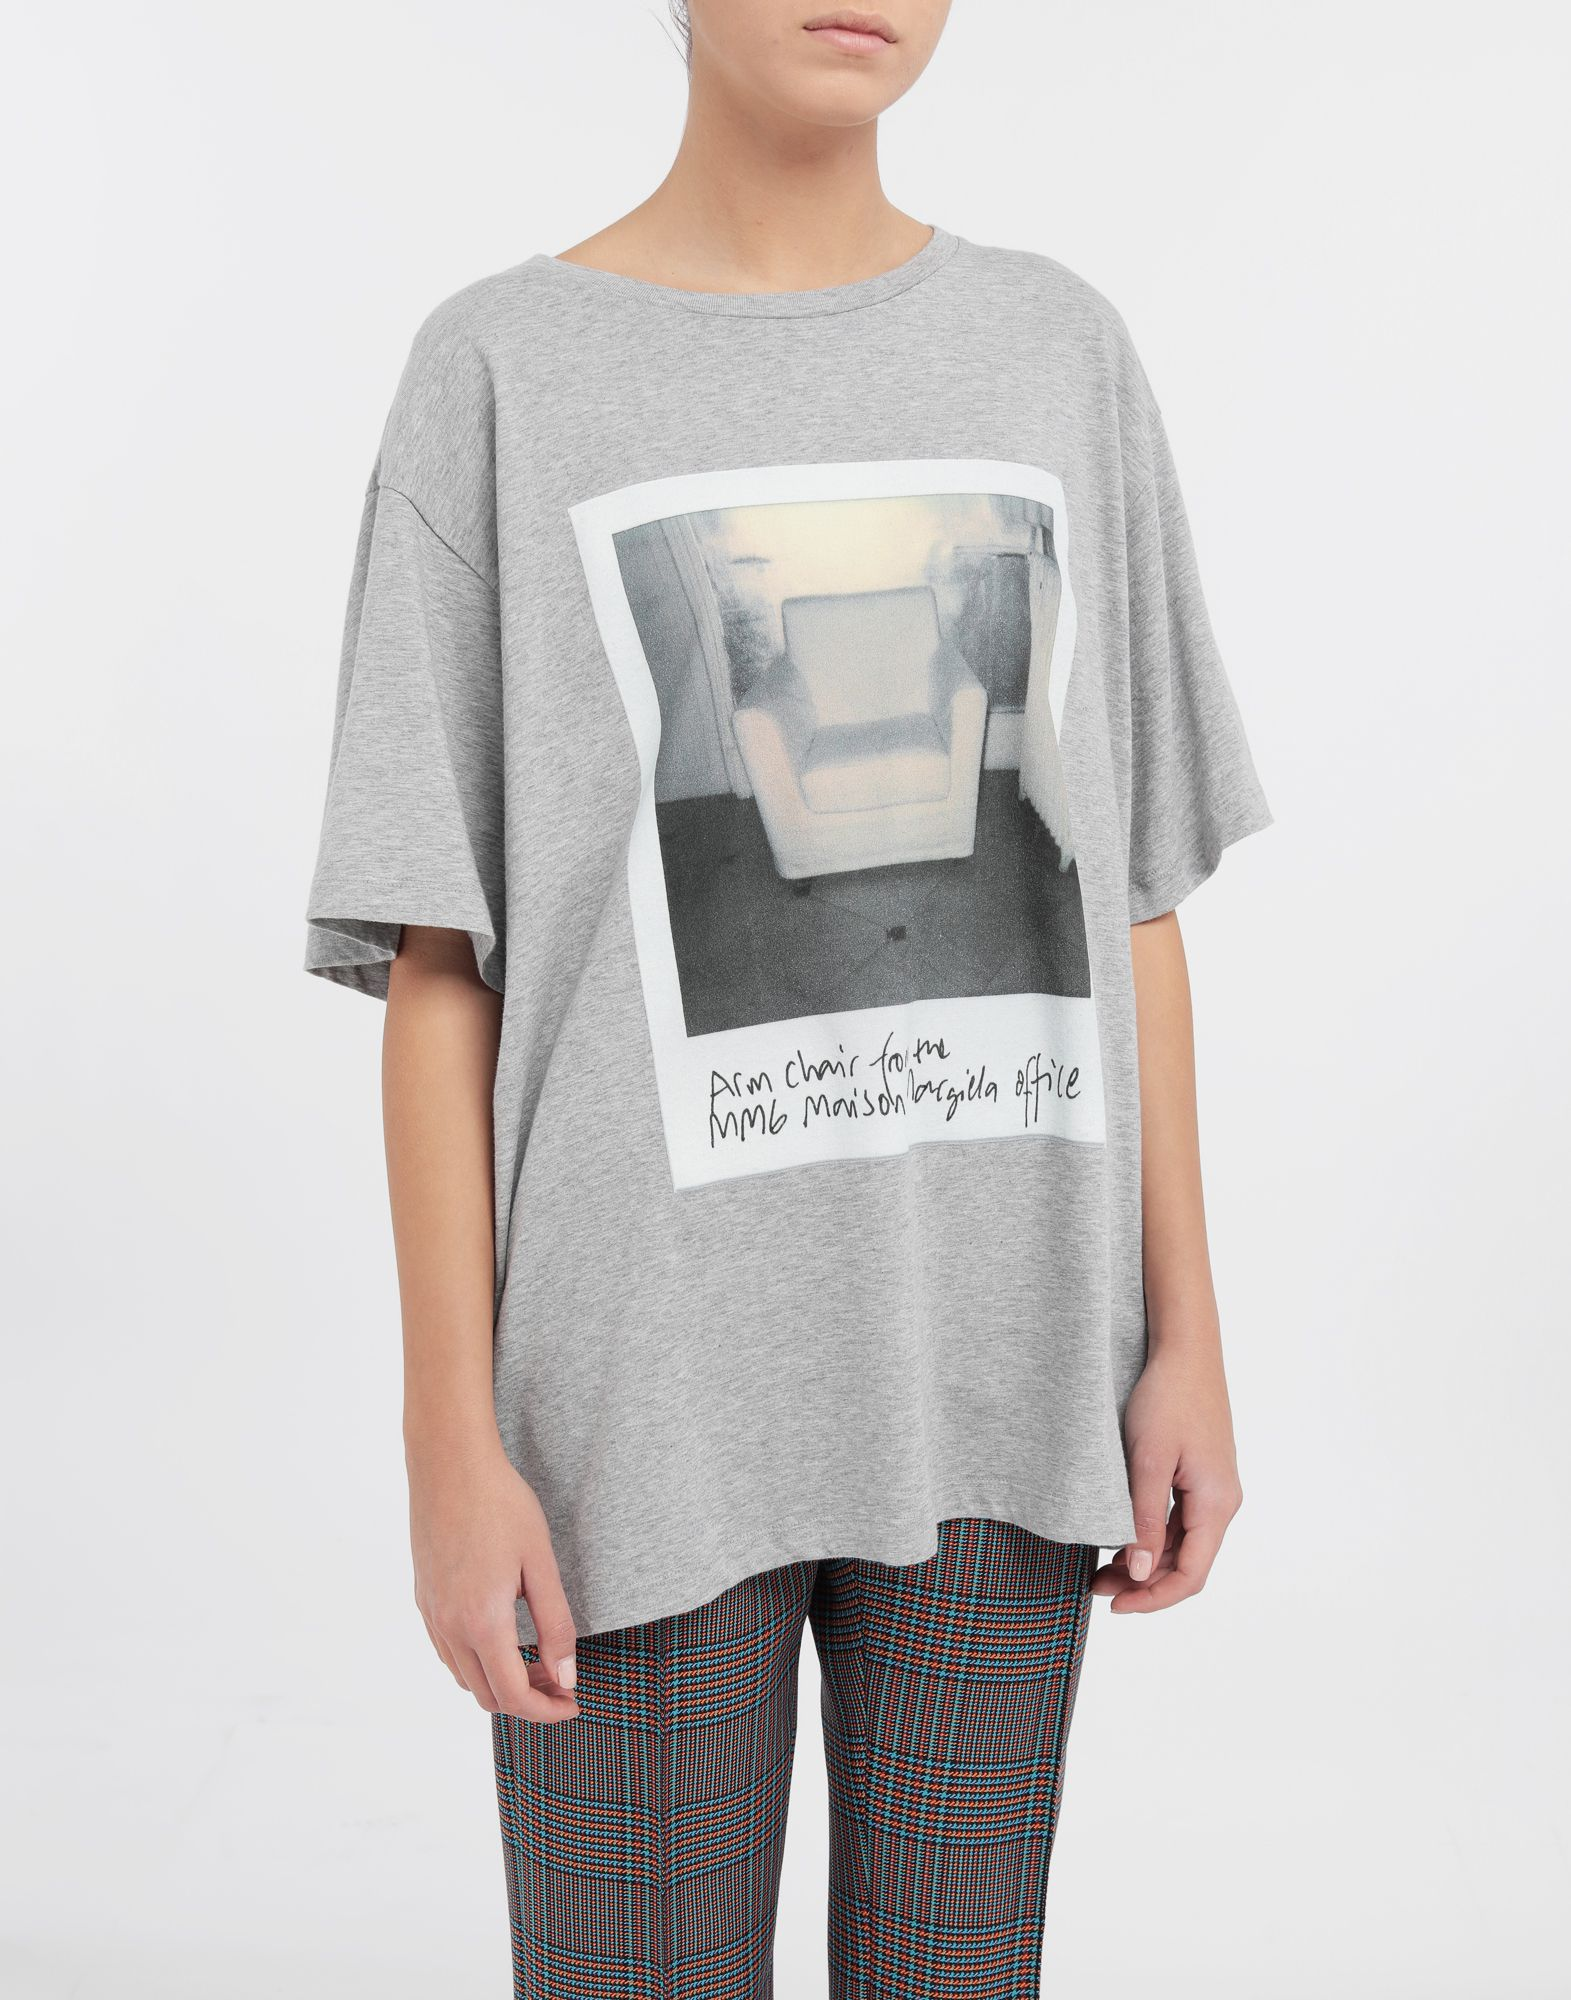 MM6 MAISON MARGIELA Polaroid chair printed T-shirt Short sleeve t-shirt Woman r